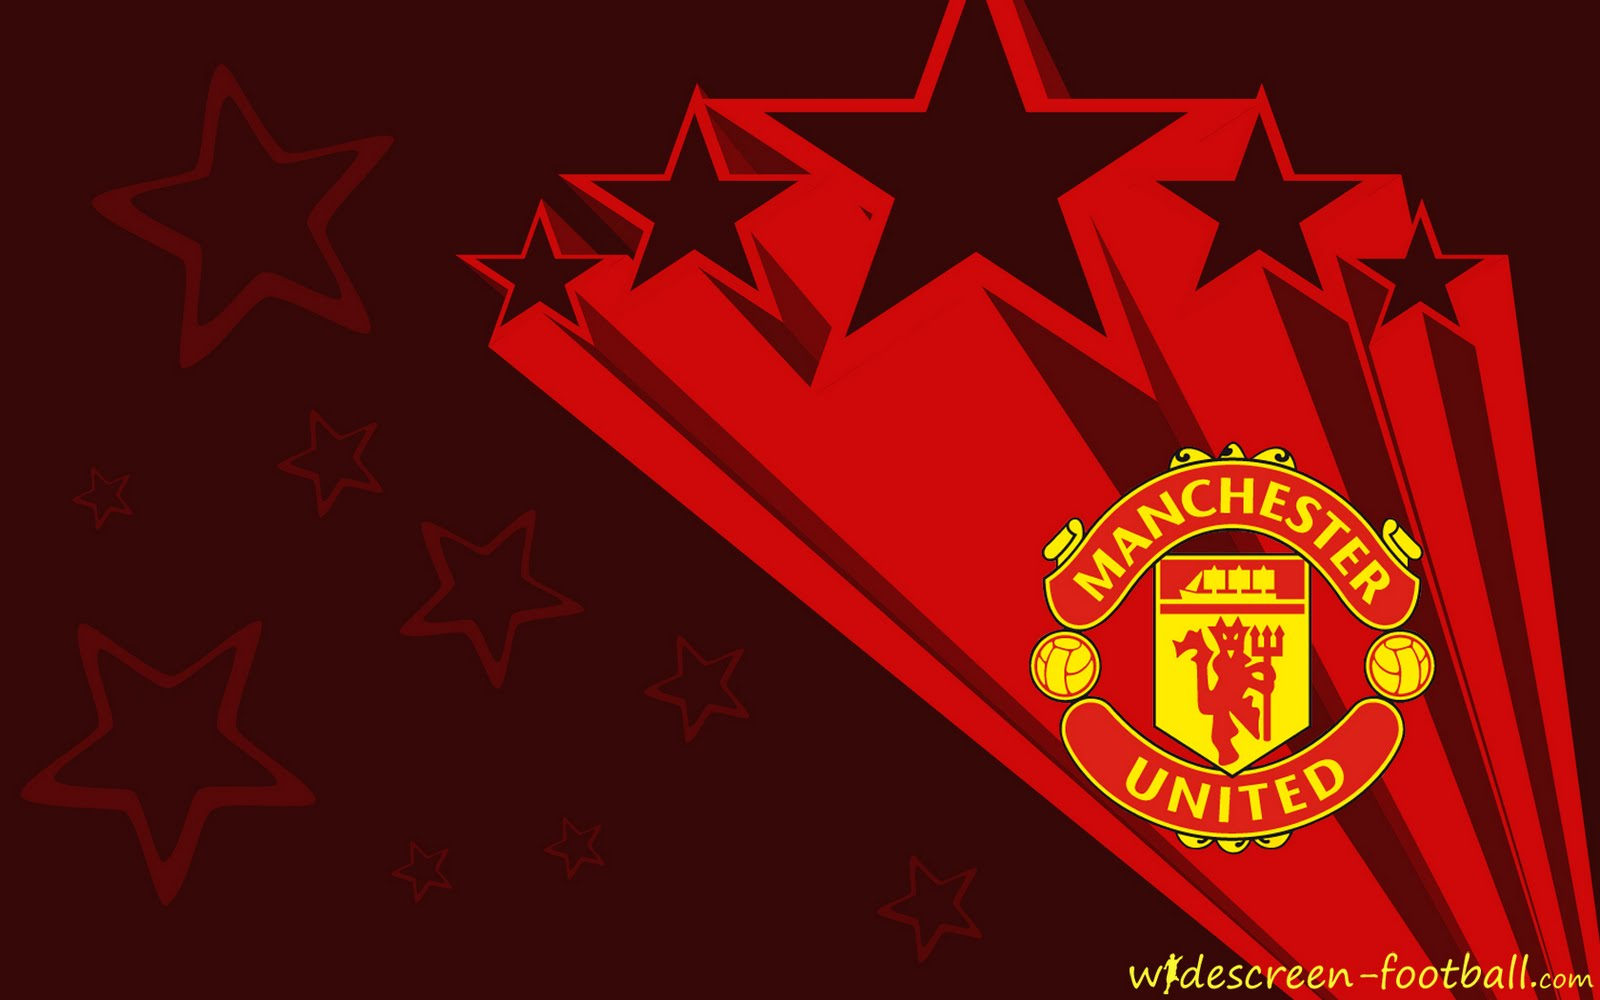 50 ] Man Utd Wallpapers Screensavers On WallpaperSafari